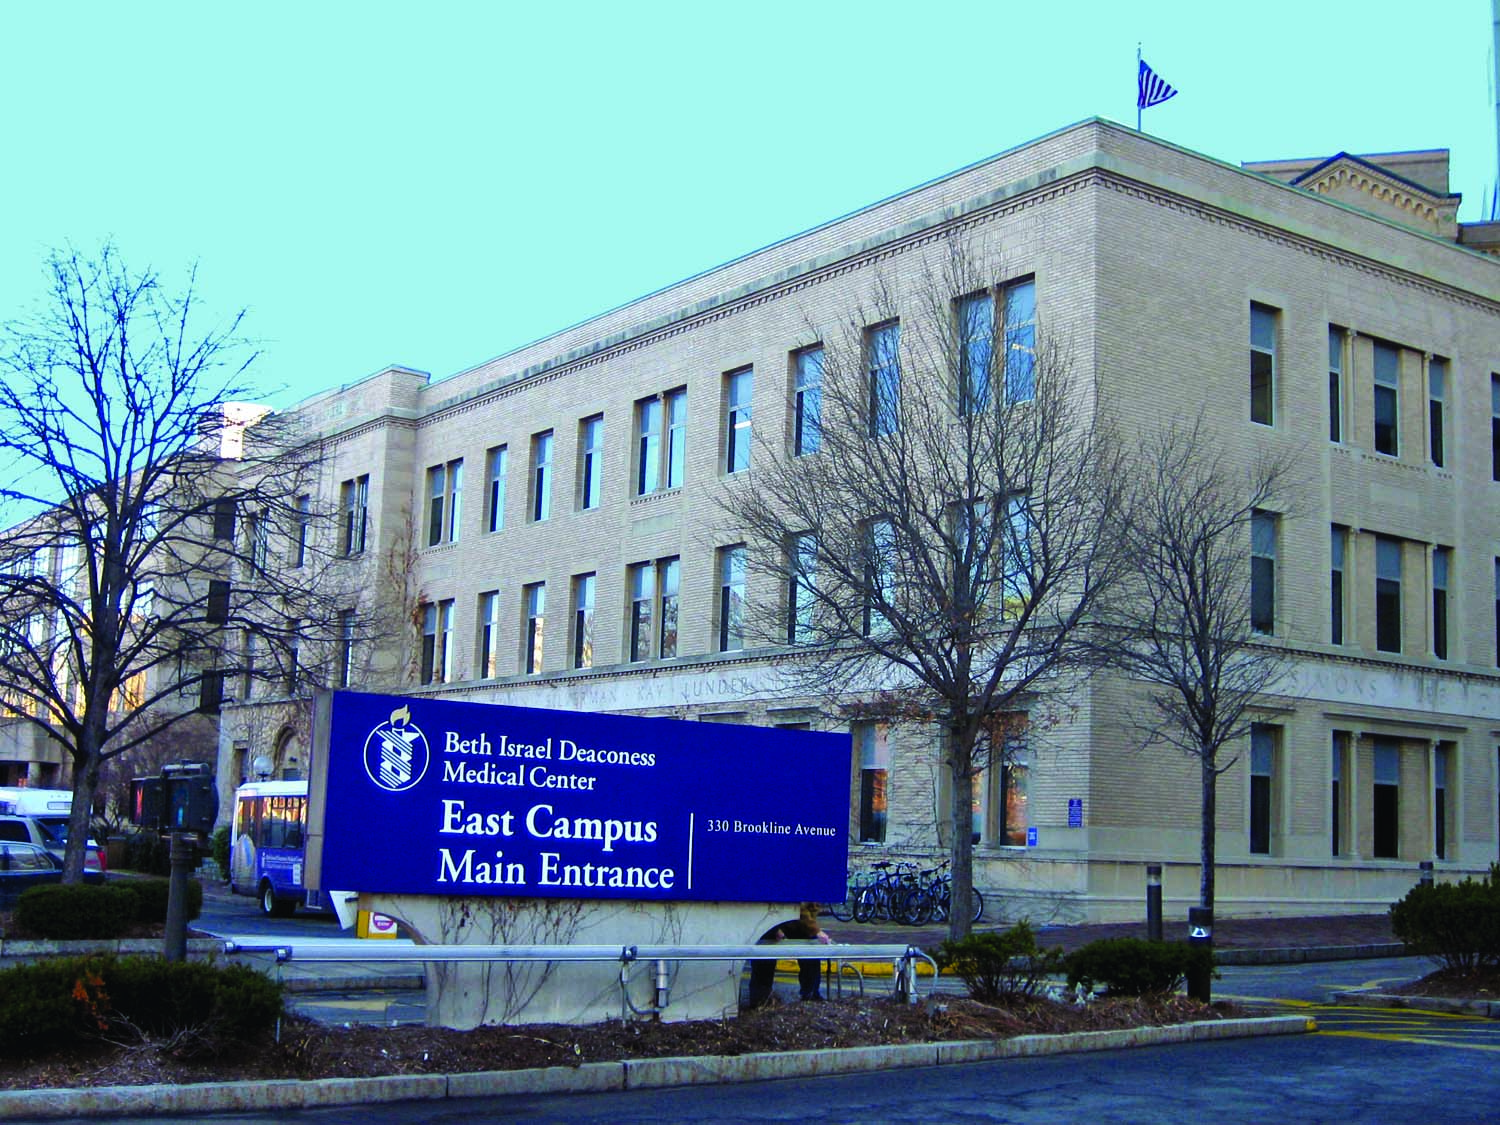 Beth Israel Deaconess Medical Center in Boston launches ICU initiative.